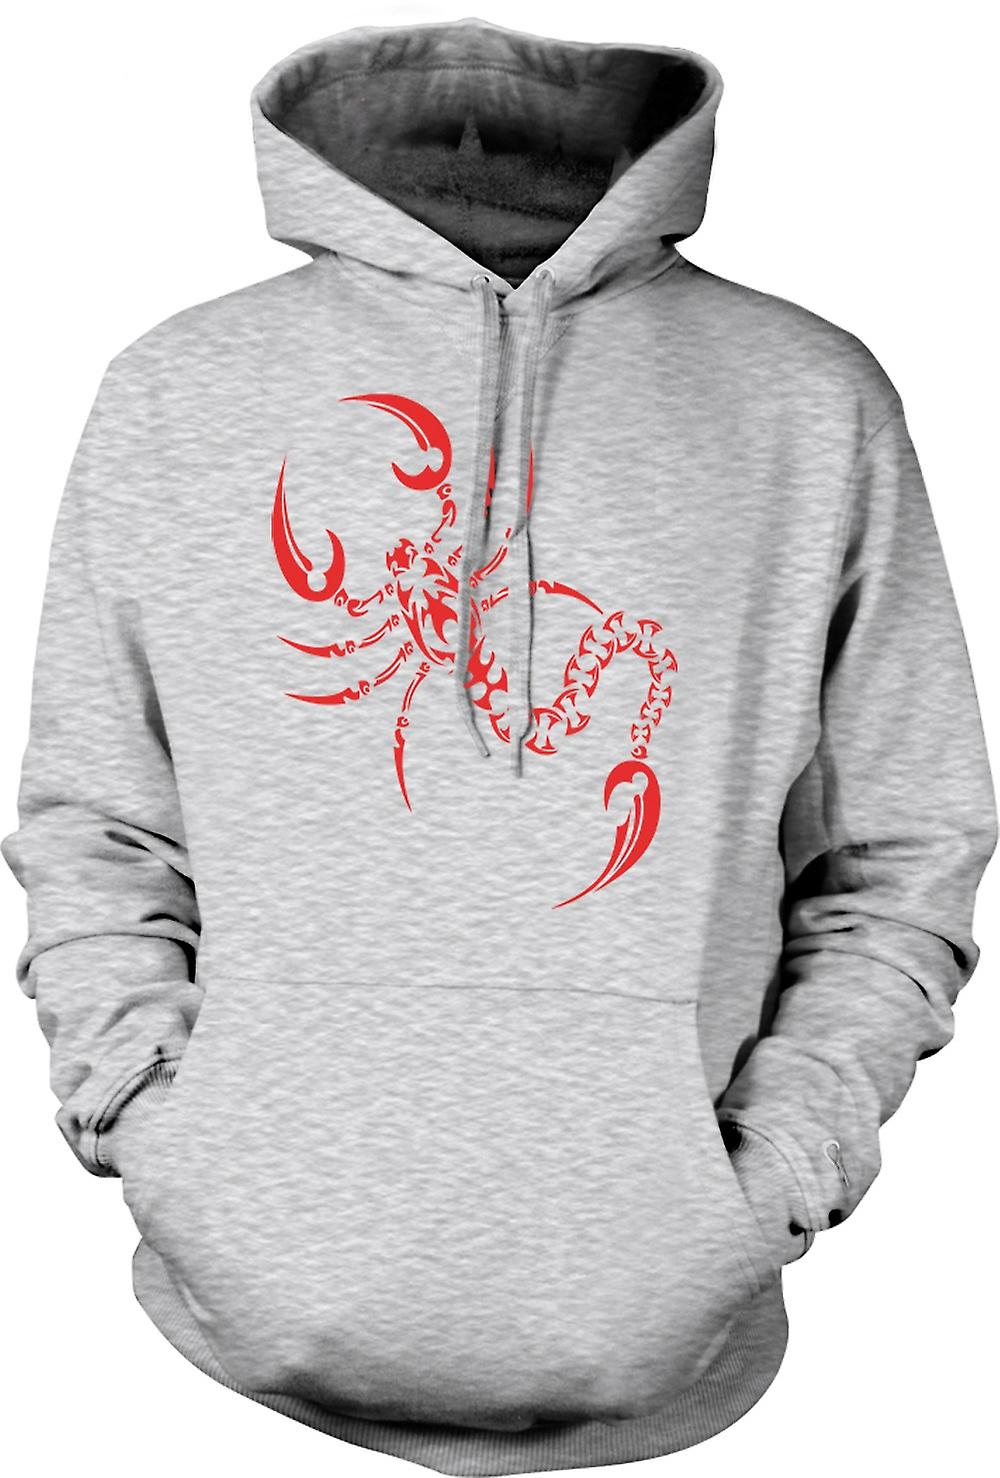 Mens Hoodie - Scorpion Tribal Design